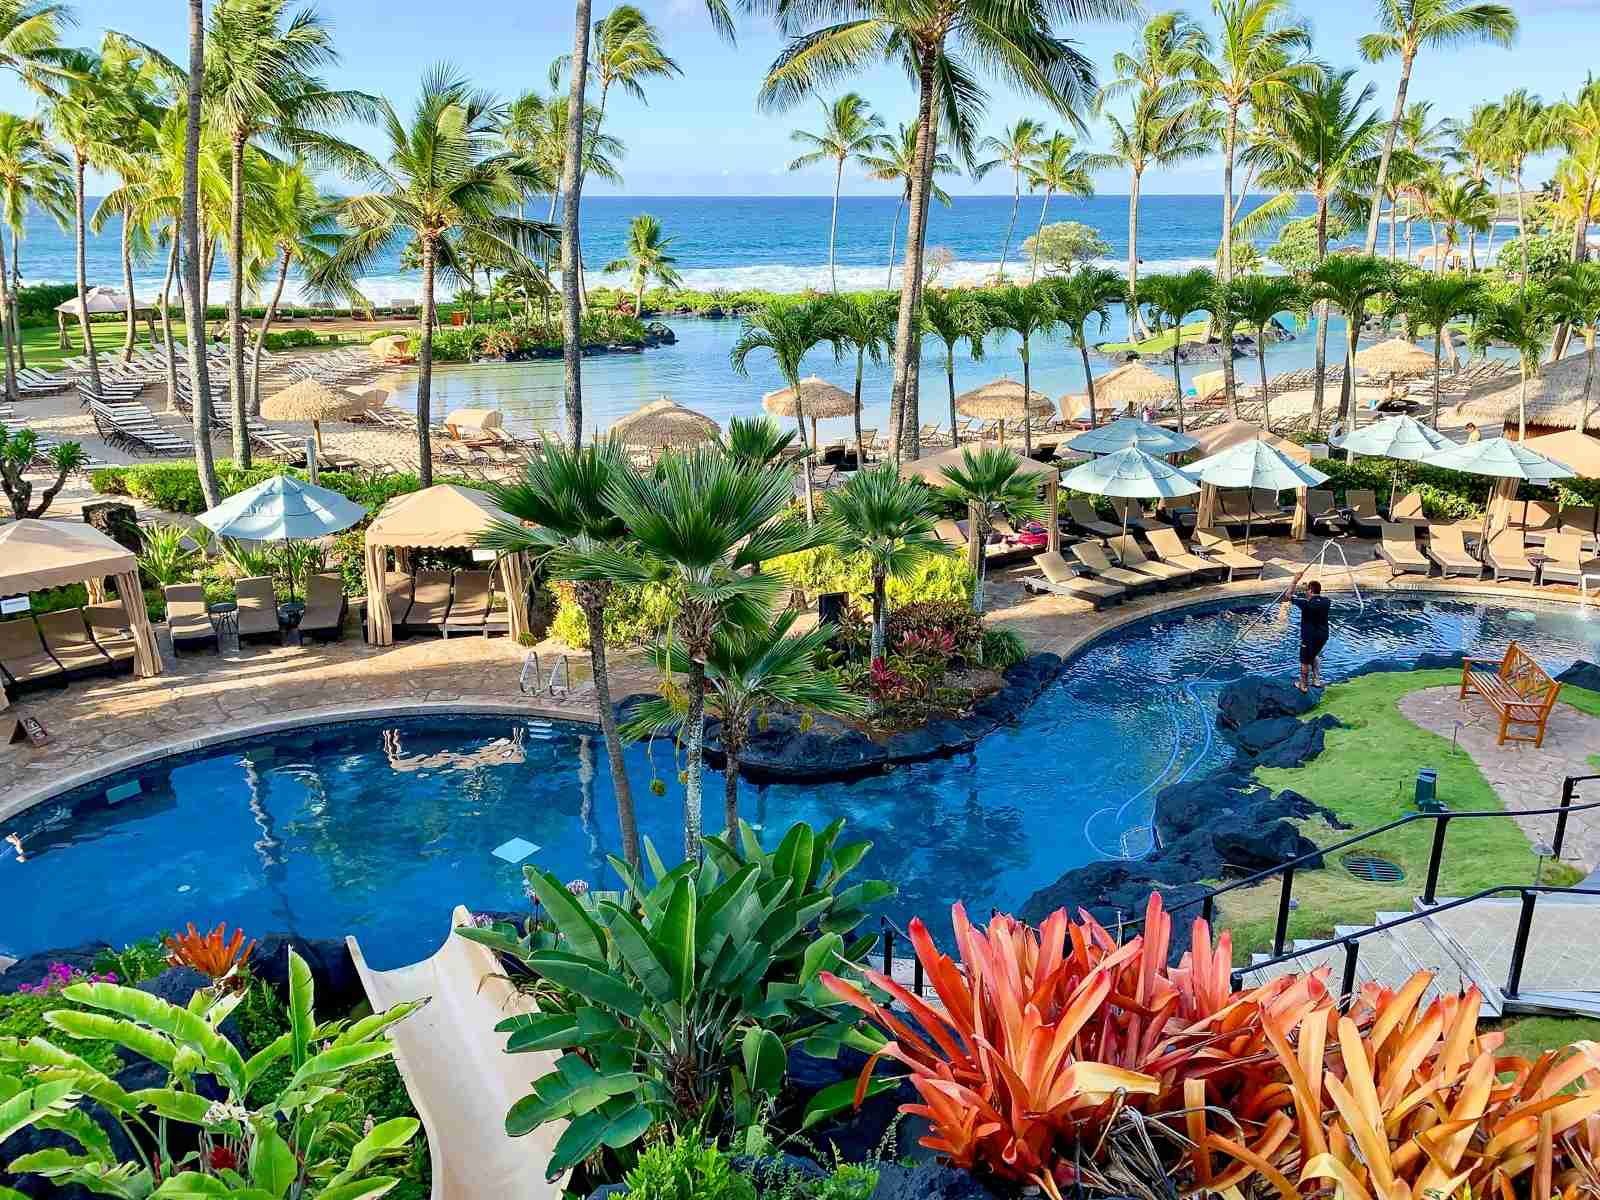 Grand Hyatt Kauai (Photo by Summer Hull / The Points Guy)